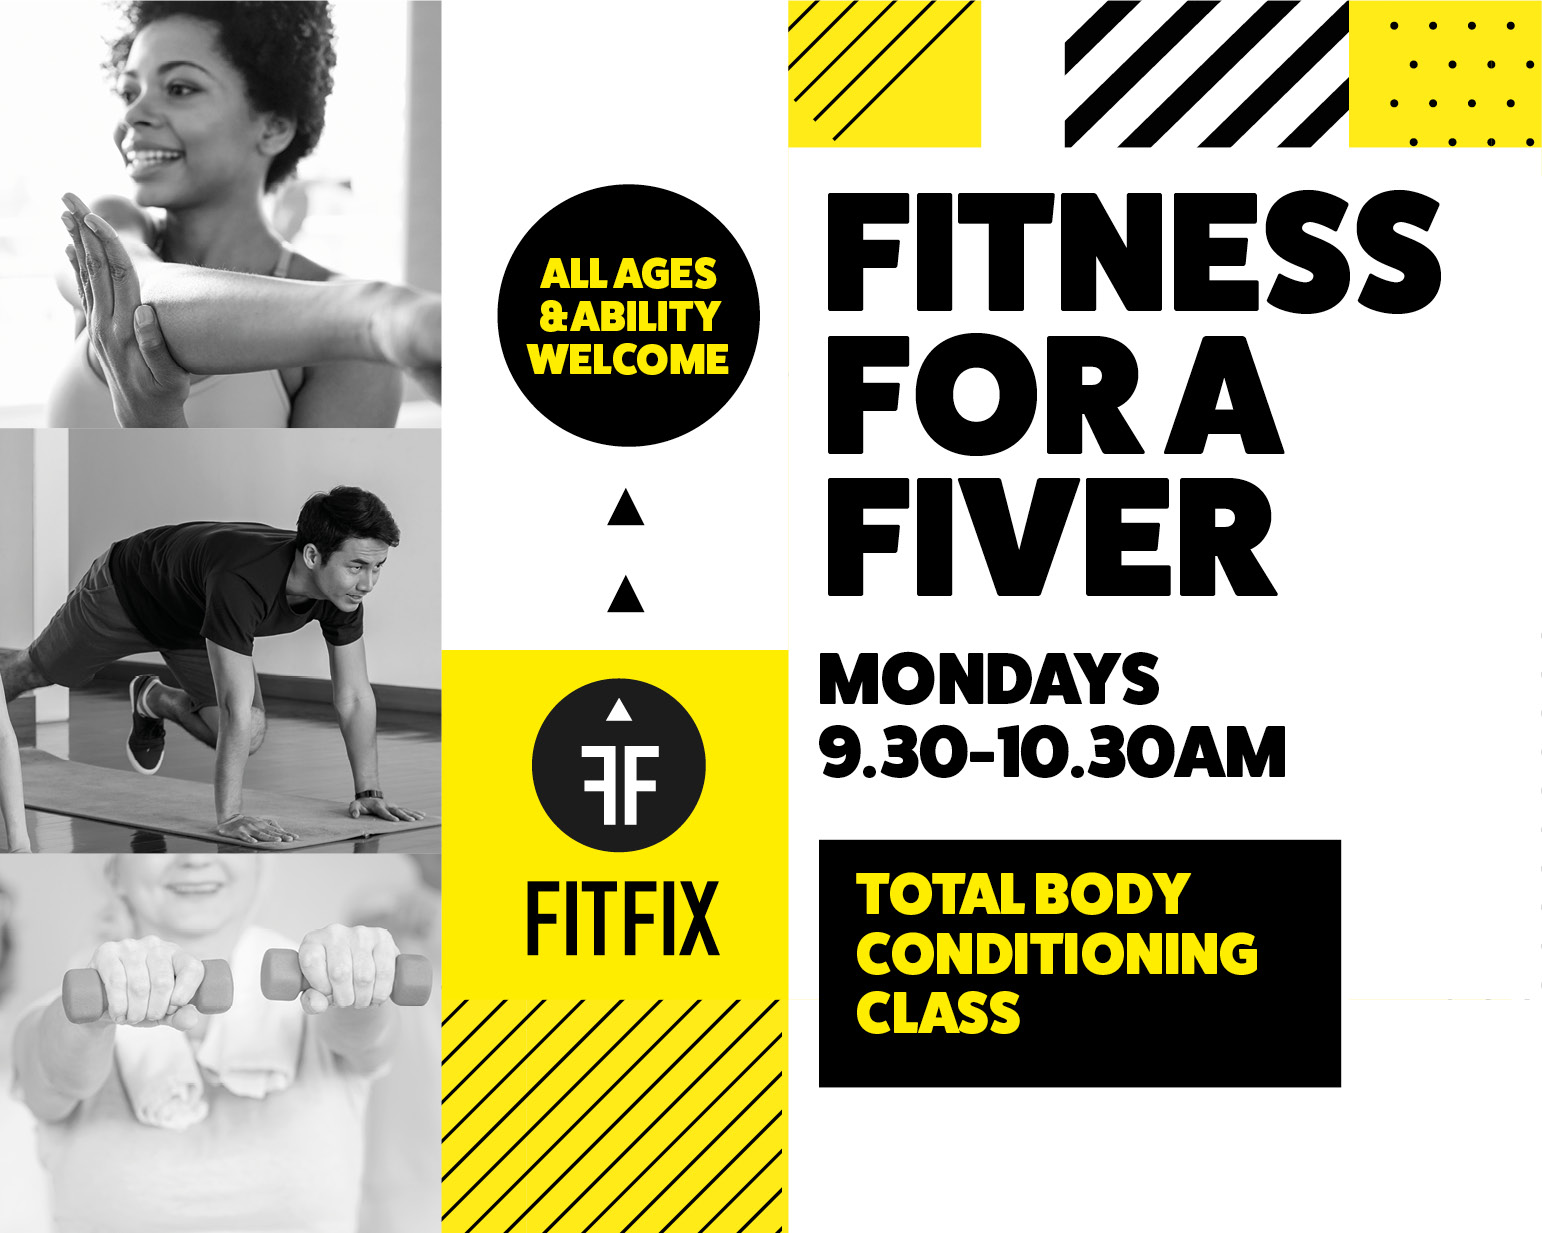 Fitness For a Fiver - Looking for a friendly fitness classto kick start your week? Why not tryour new class in Forest Hill:MONDAYS9.30-10.30AMHope Centre 118 Malham Rd,Forest Hill, London SE23 1A